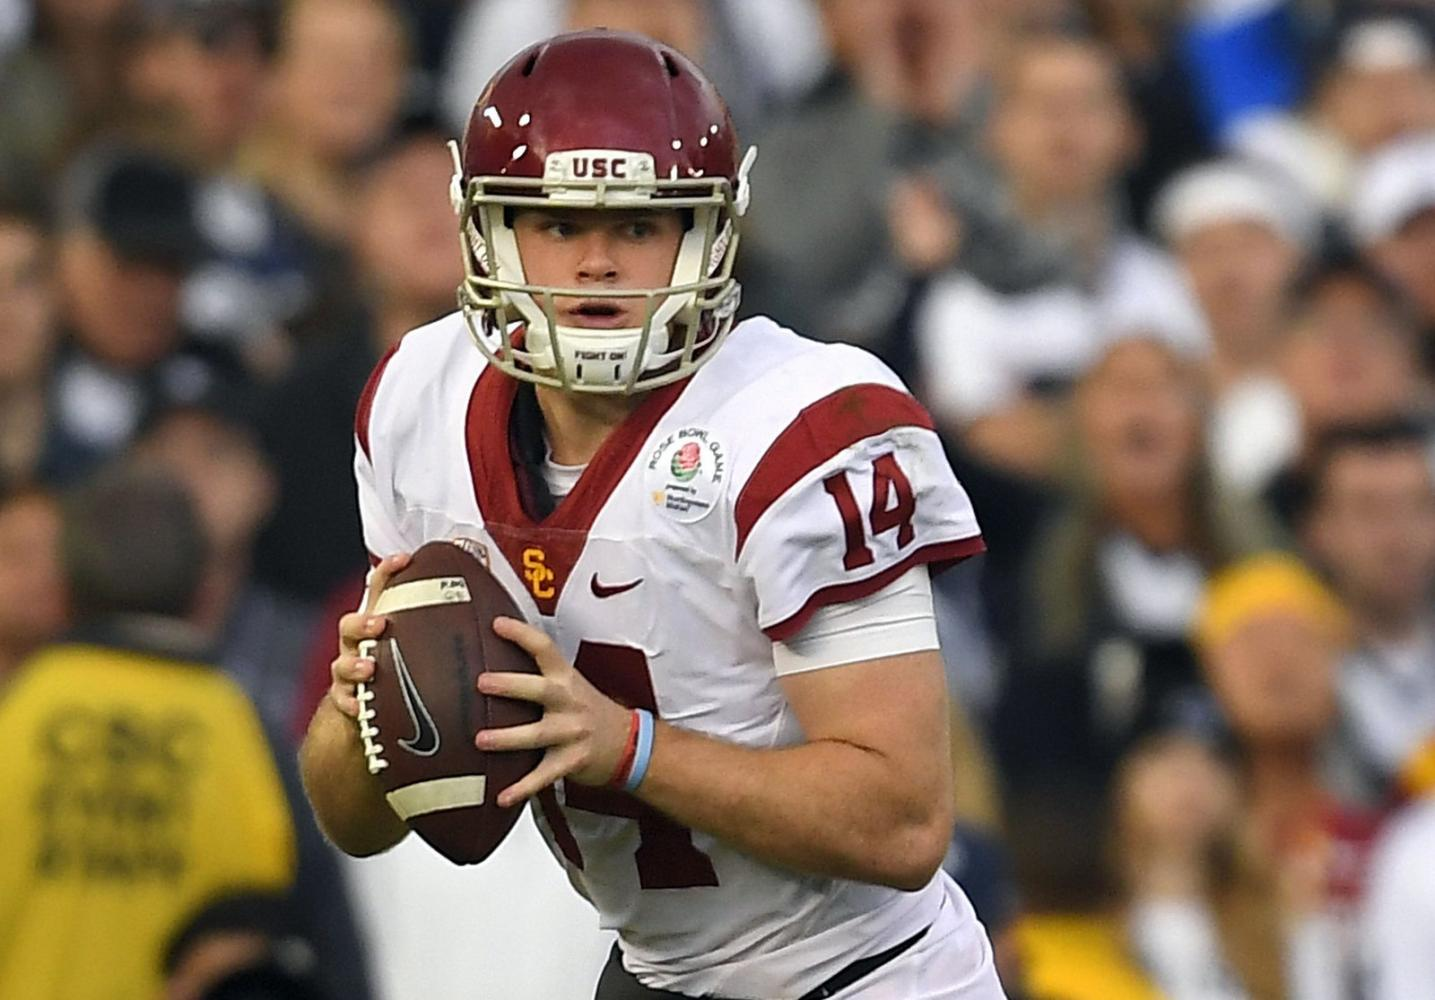 USC QB Sam Darnold hopes to take down Notre Dame this Saturday